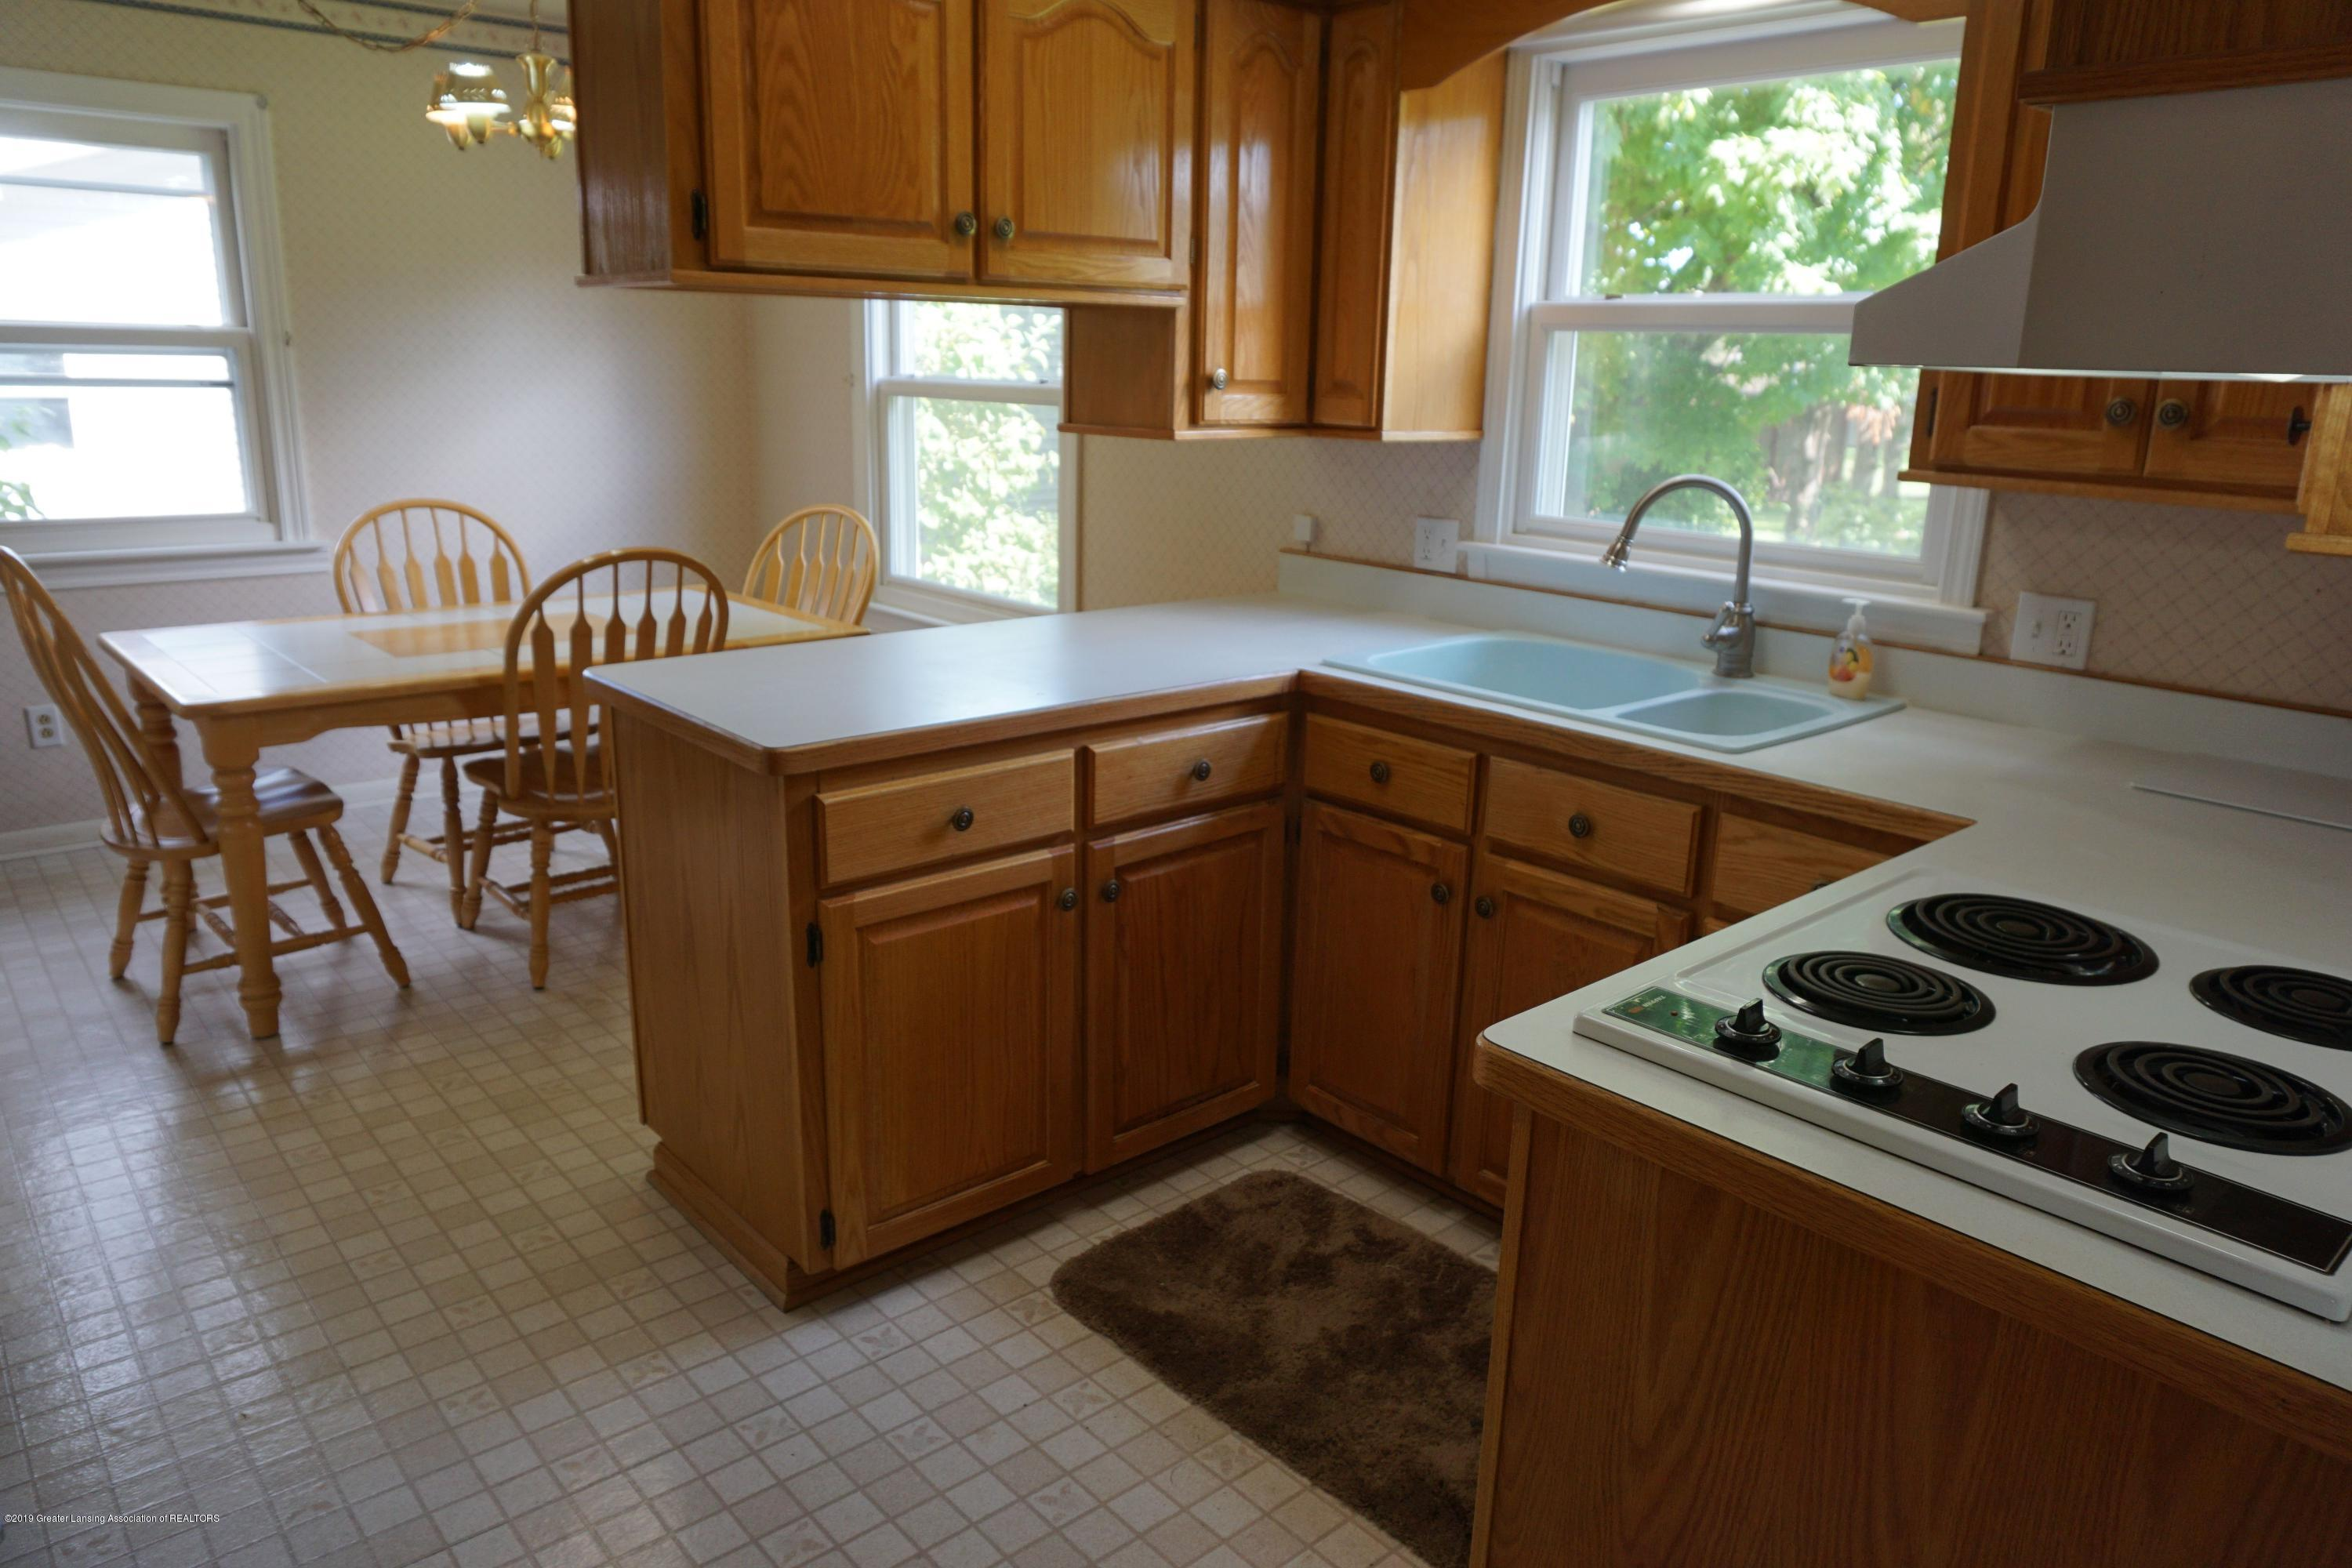 809 S Lansing St - Updated Cabinetry! - 5